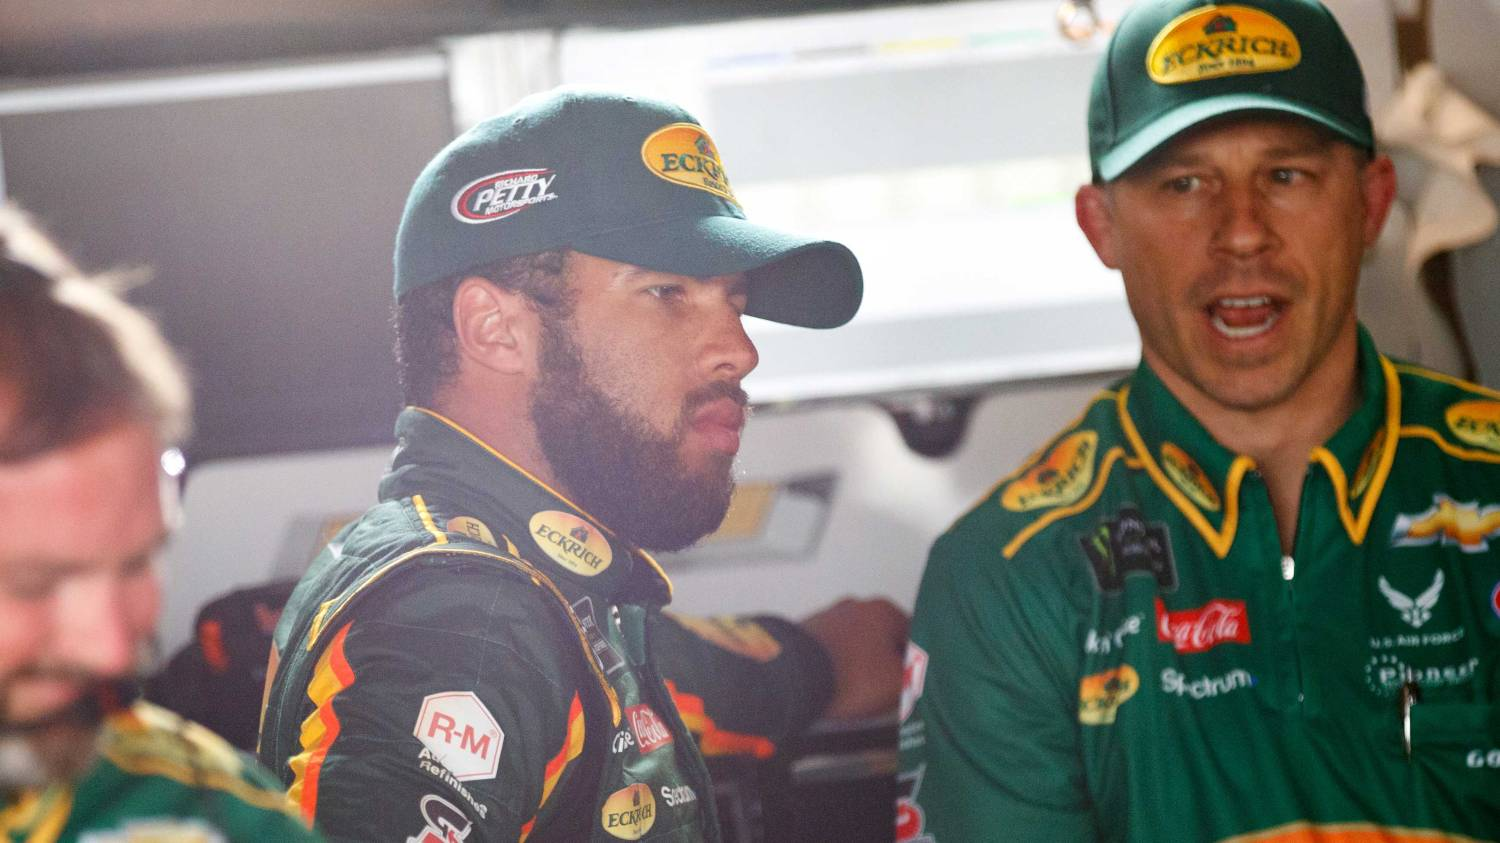 1a4a2790ca0 Is Bubba Wallace a sign of success or struggle in NASCAR S Drive for  Diversity